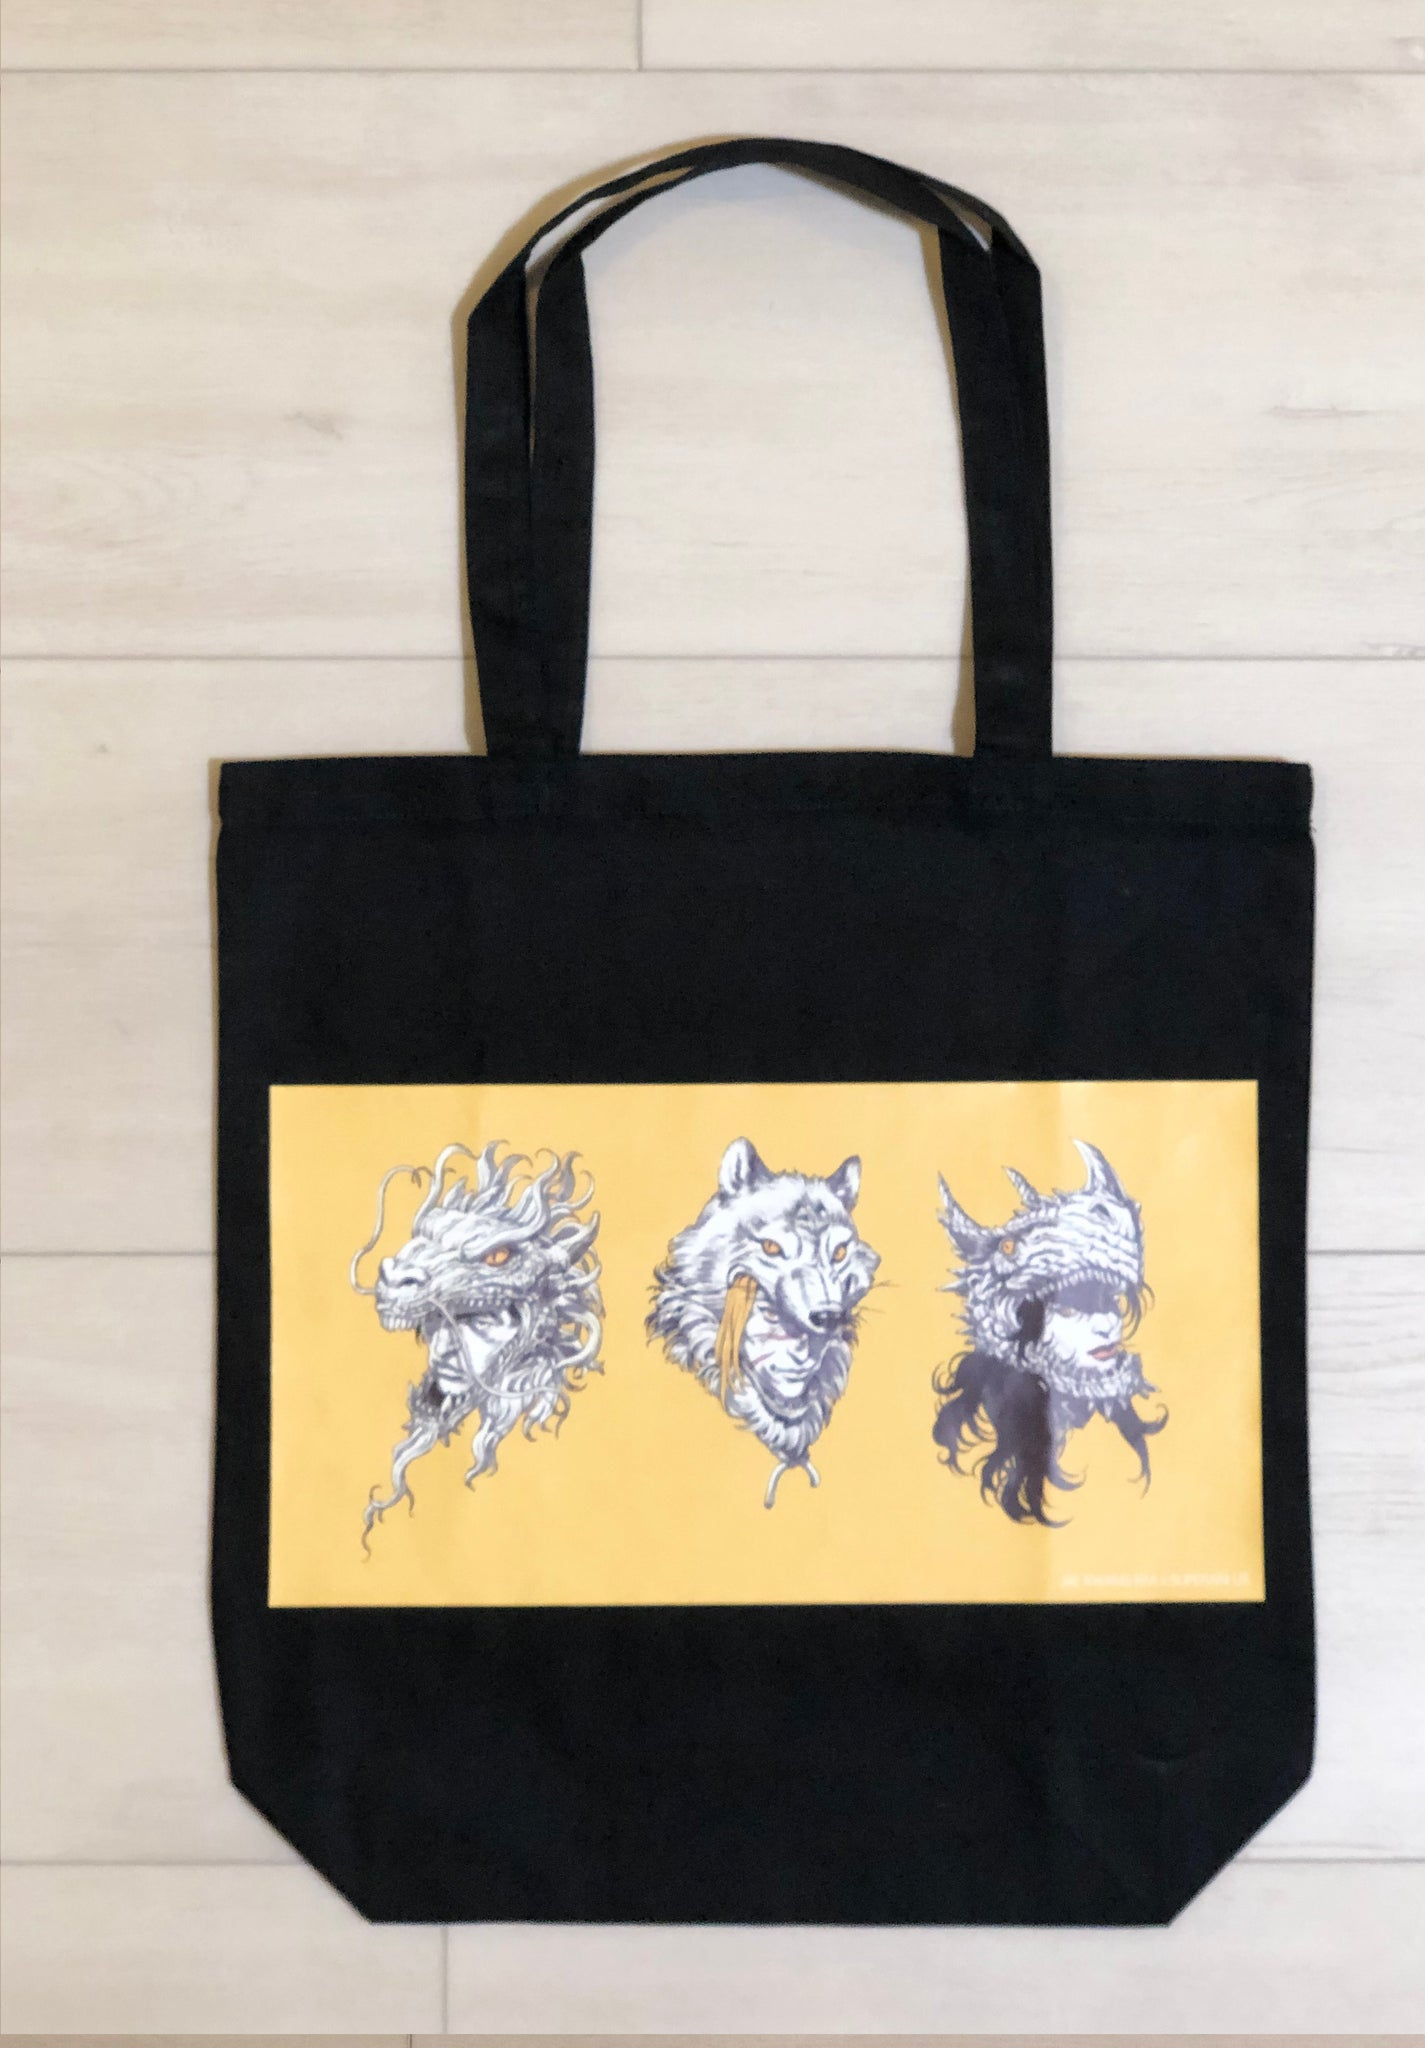 Jae Kwang Park x Superani US Tote Bag